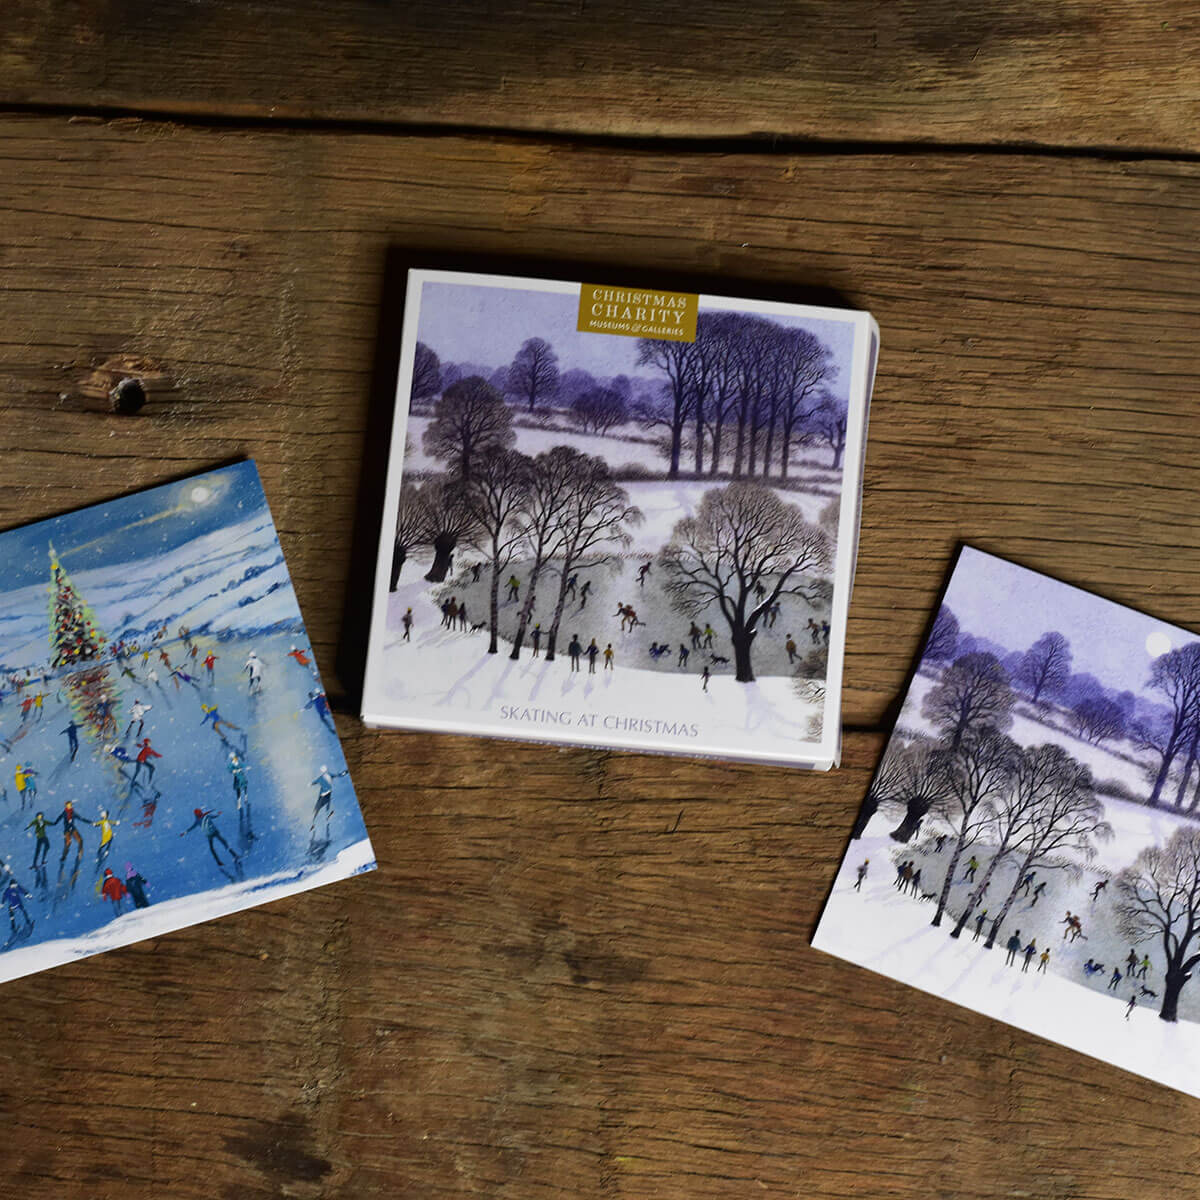 Museums & Galleries Festive Scene Christmas Cards